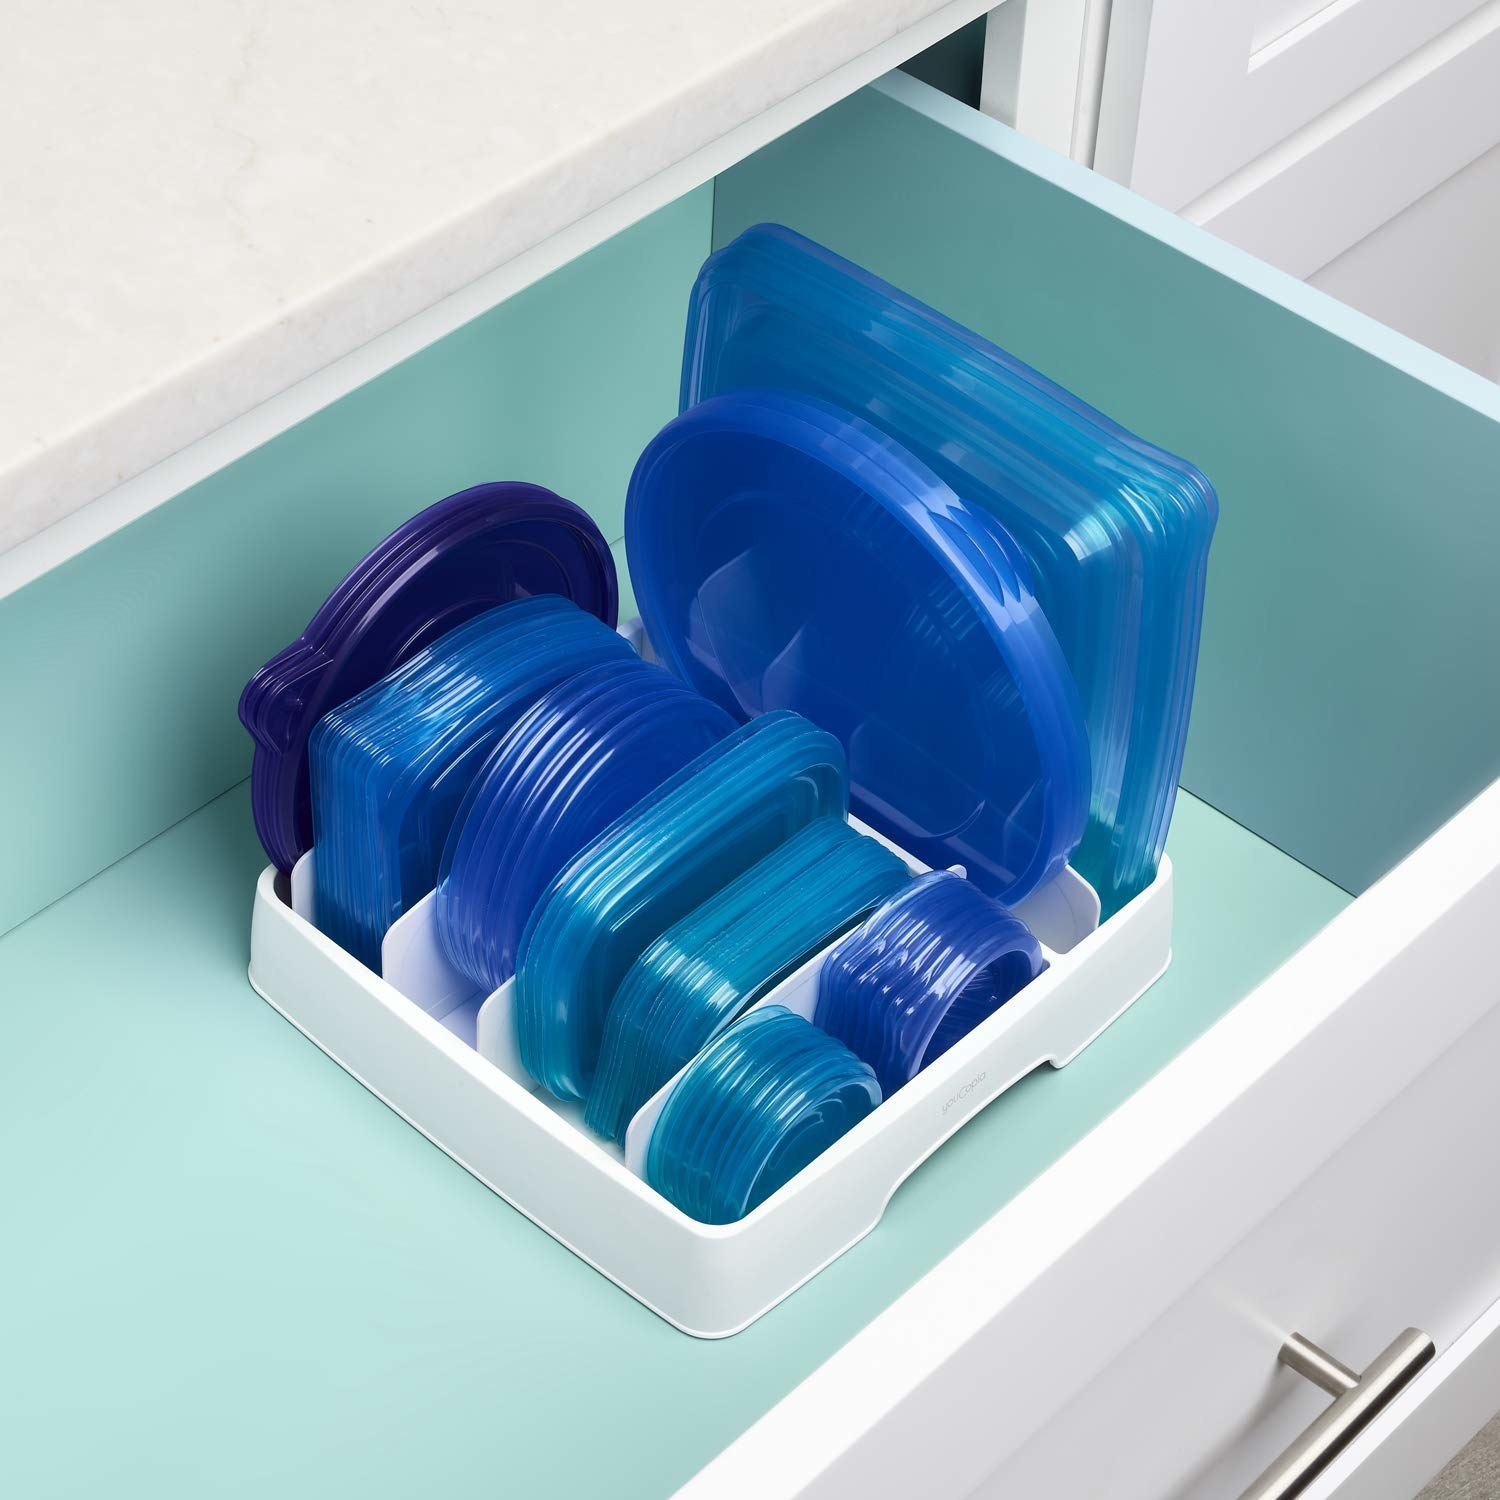 A bunch of plastic lids organized by size in the container lid organizer